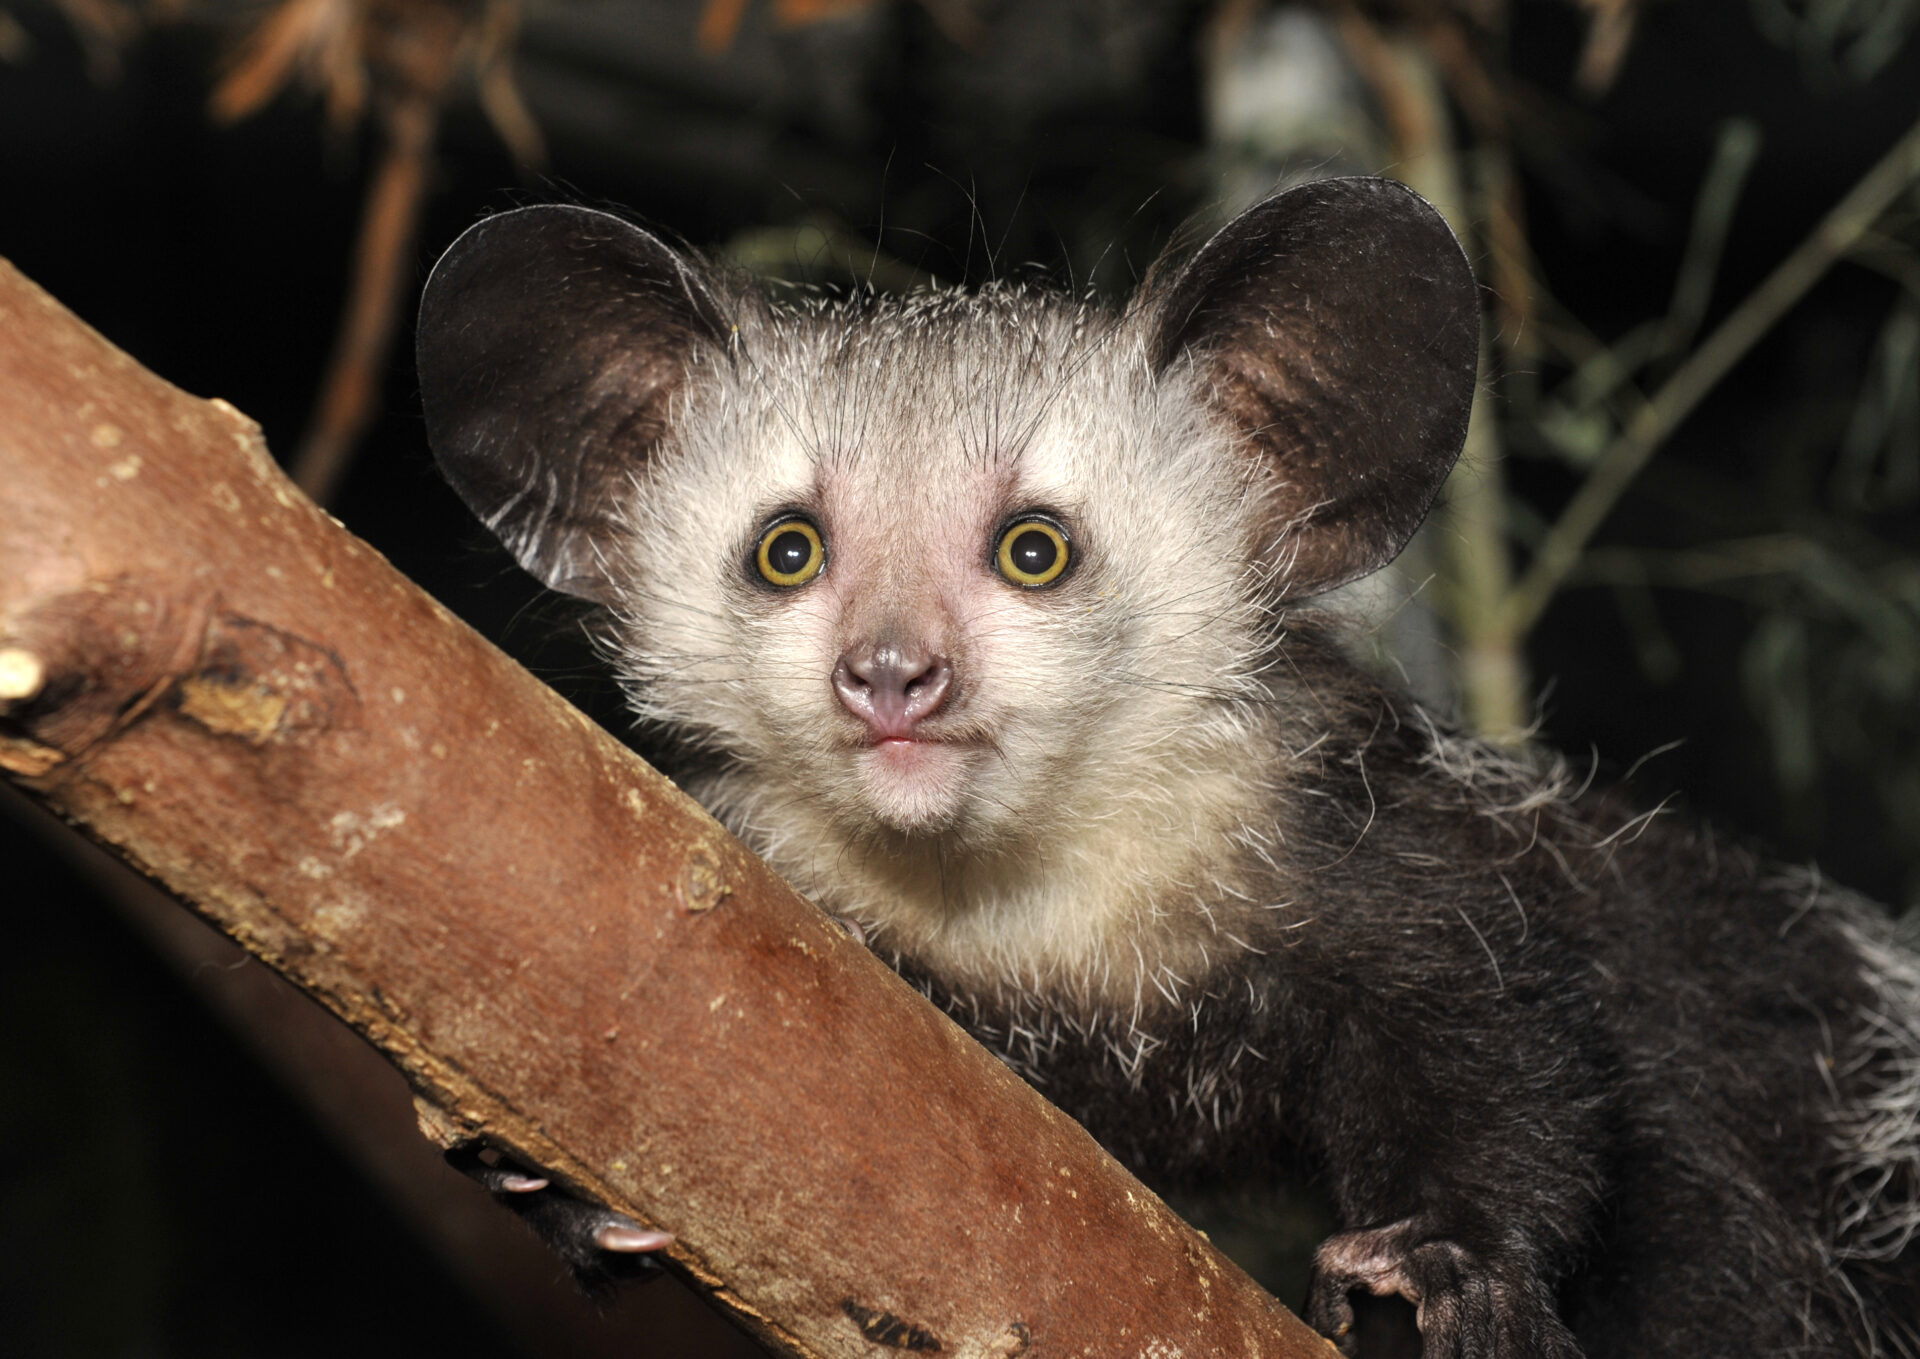 infant aye-aye female elphaba